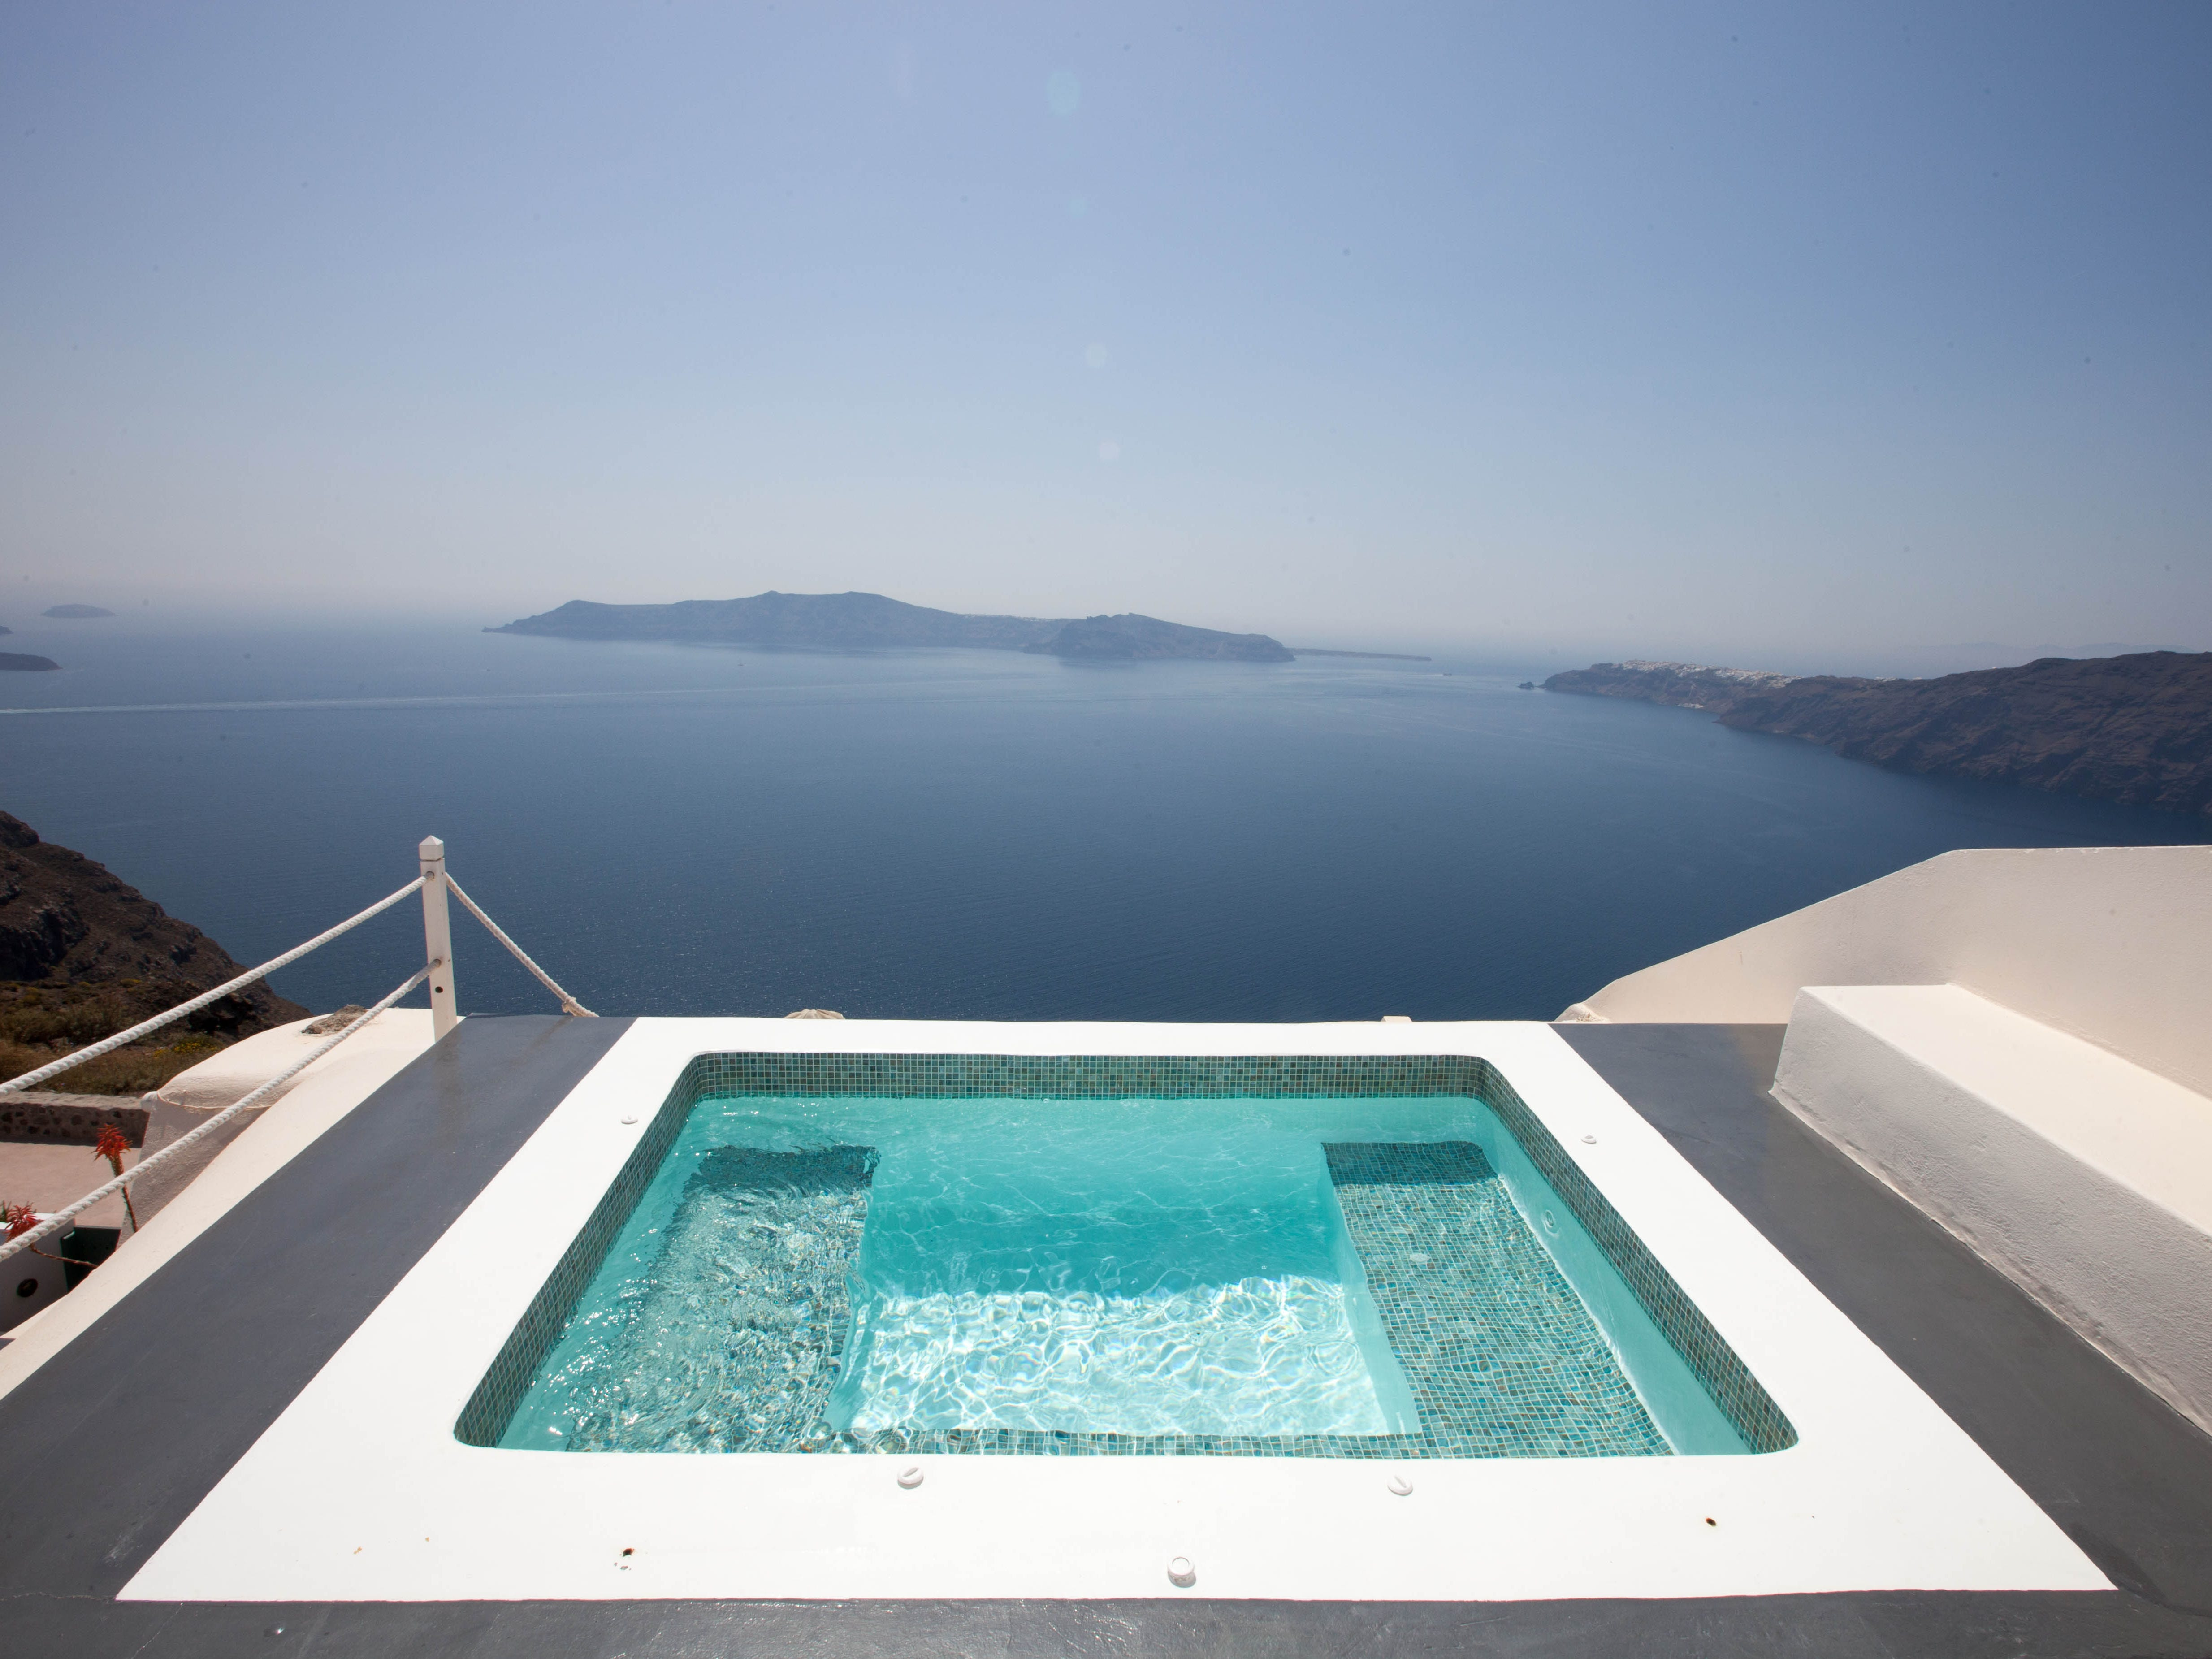 Aenaon Villas: Daydreams of a perfect honeymoon might summon images of sunny days, romantic evenings and pampering amenities. Aenaon Villas, comprised of seven luxury villas, offers it all and then some. You can expect to find the obligatory infinity pool overlooking the sea, plus traditional Cycladic design, including a gleaming white exterior.